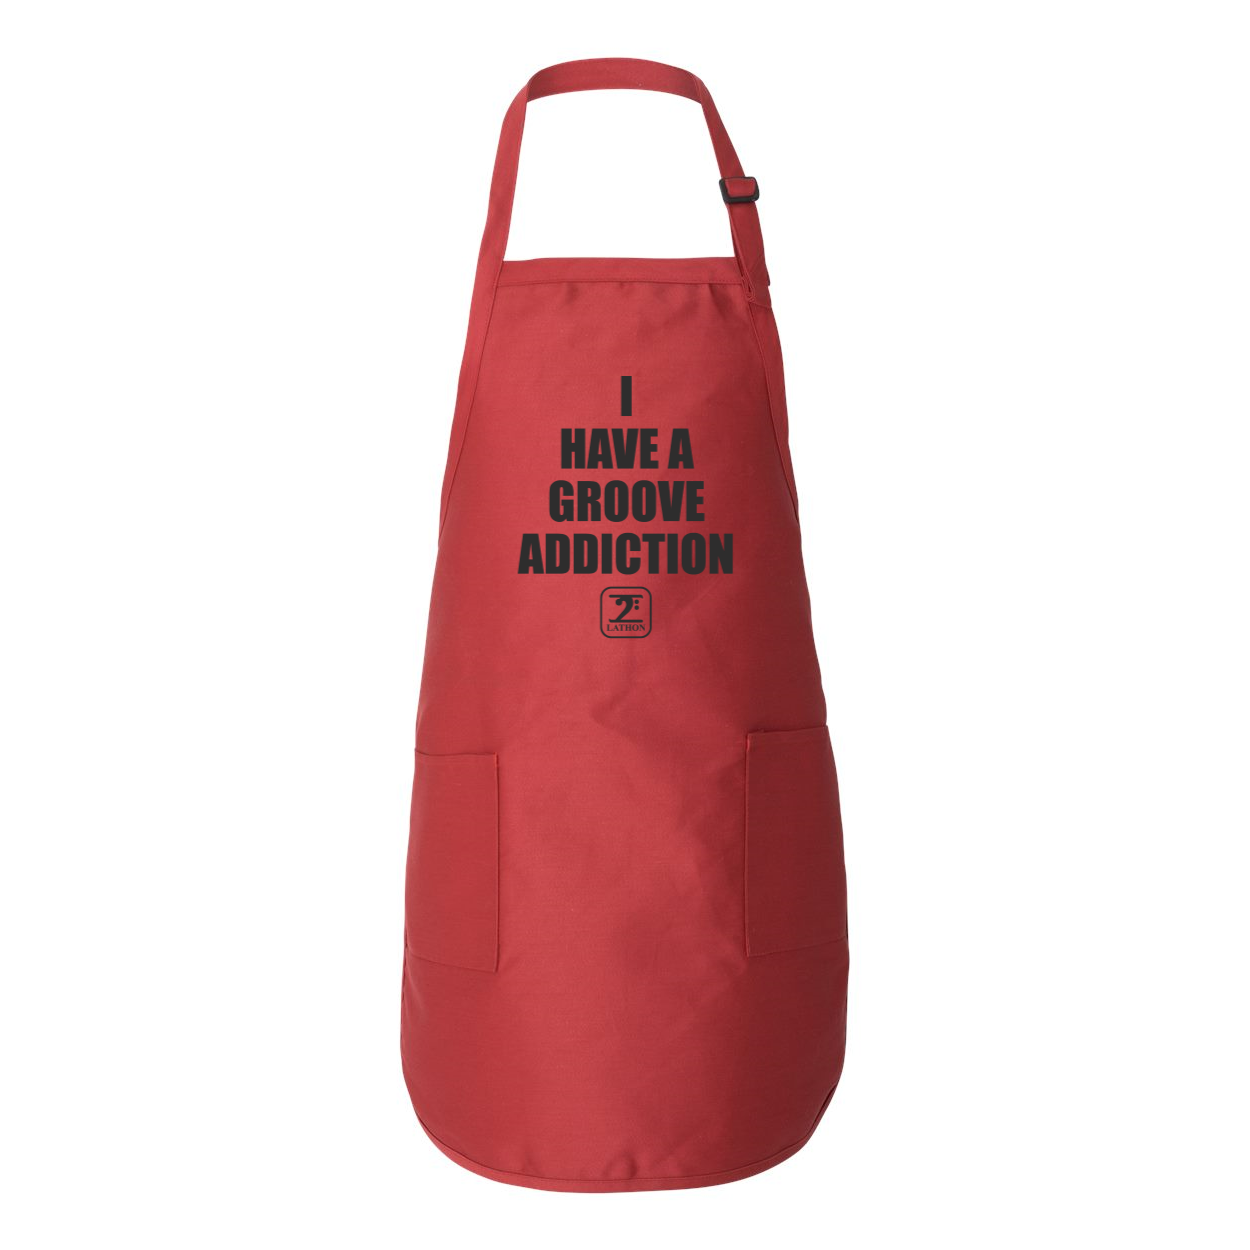 I HAVE A GROOVE ADDICTION Full-Length Apron with Pockets - Lathon Bass Wear